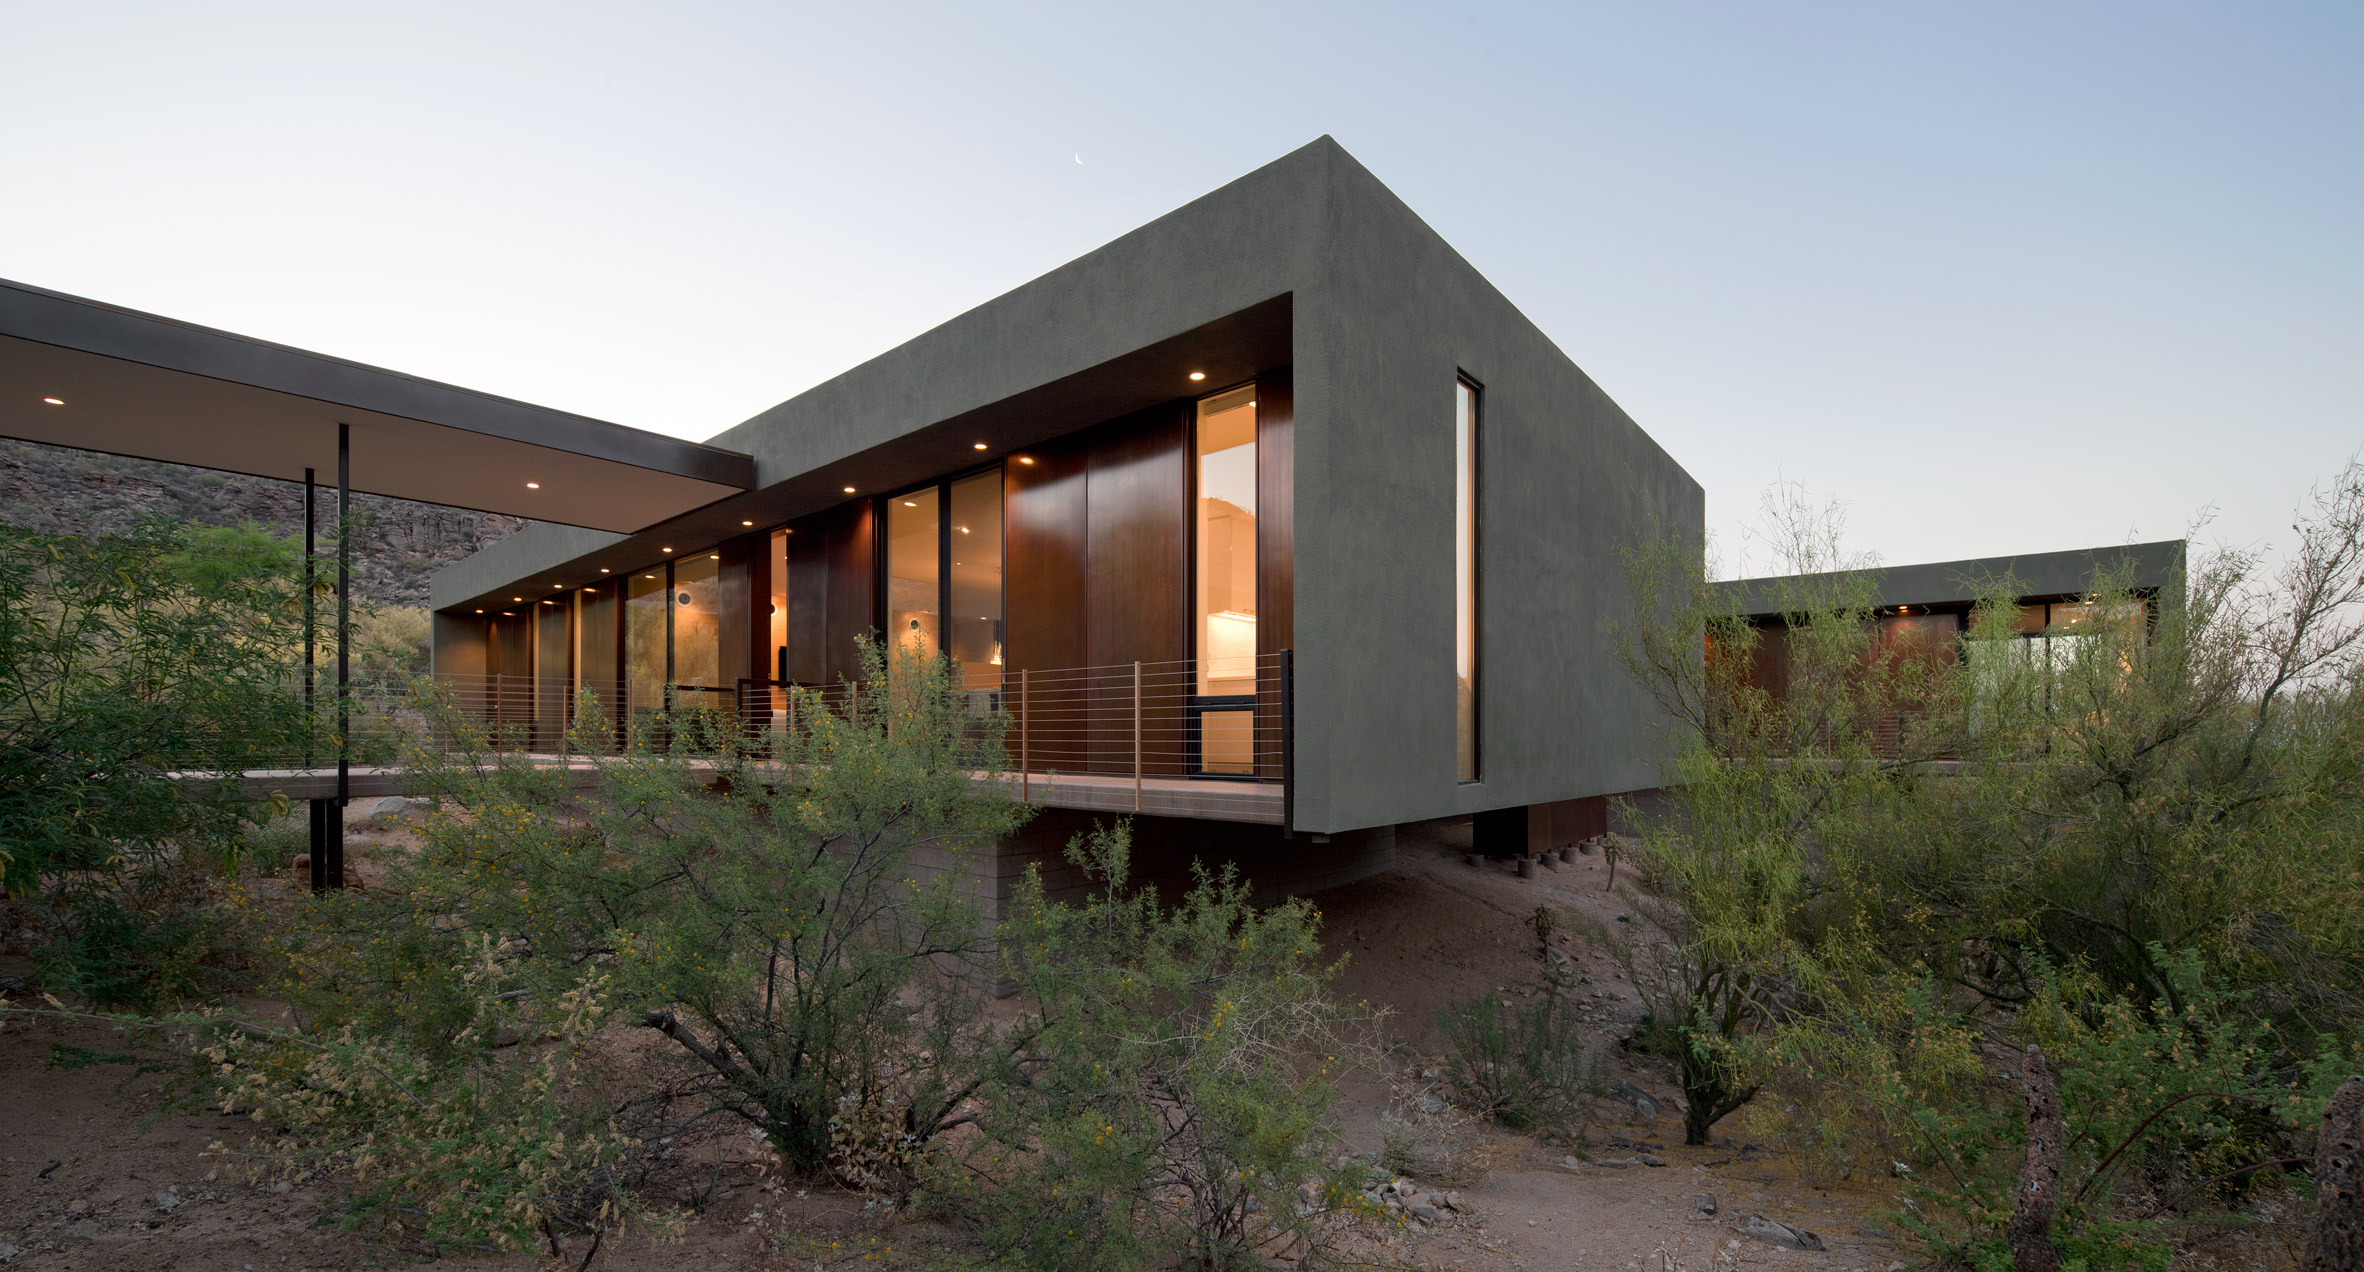 ibarra rosano Ibarra Rosano Designs Home Above the Desert in Arizona Ibarraro Rosano Designs Home Above the Desert in Arizona 1